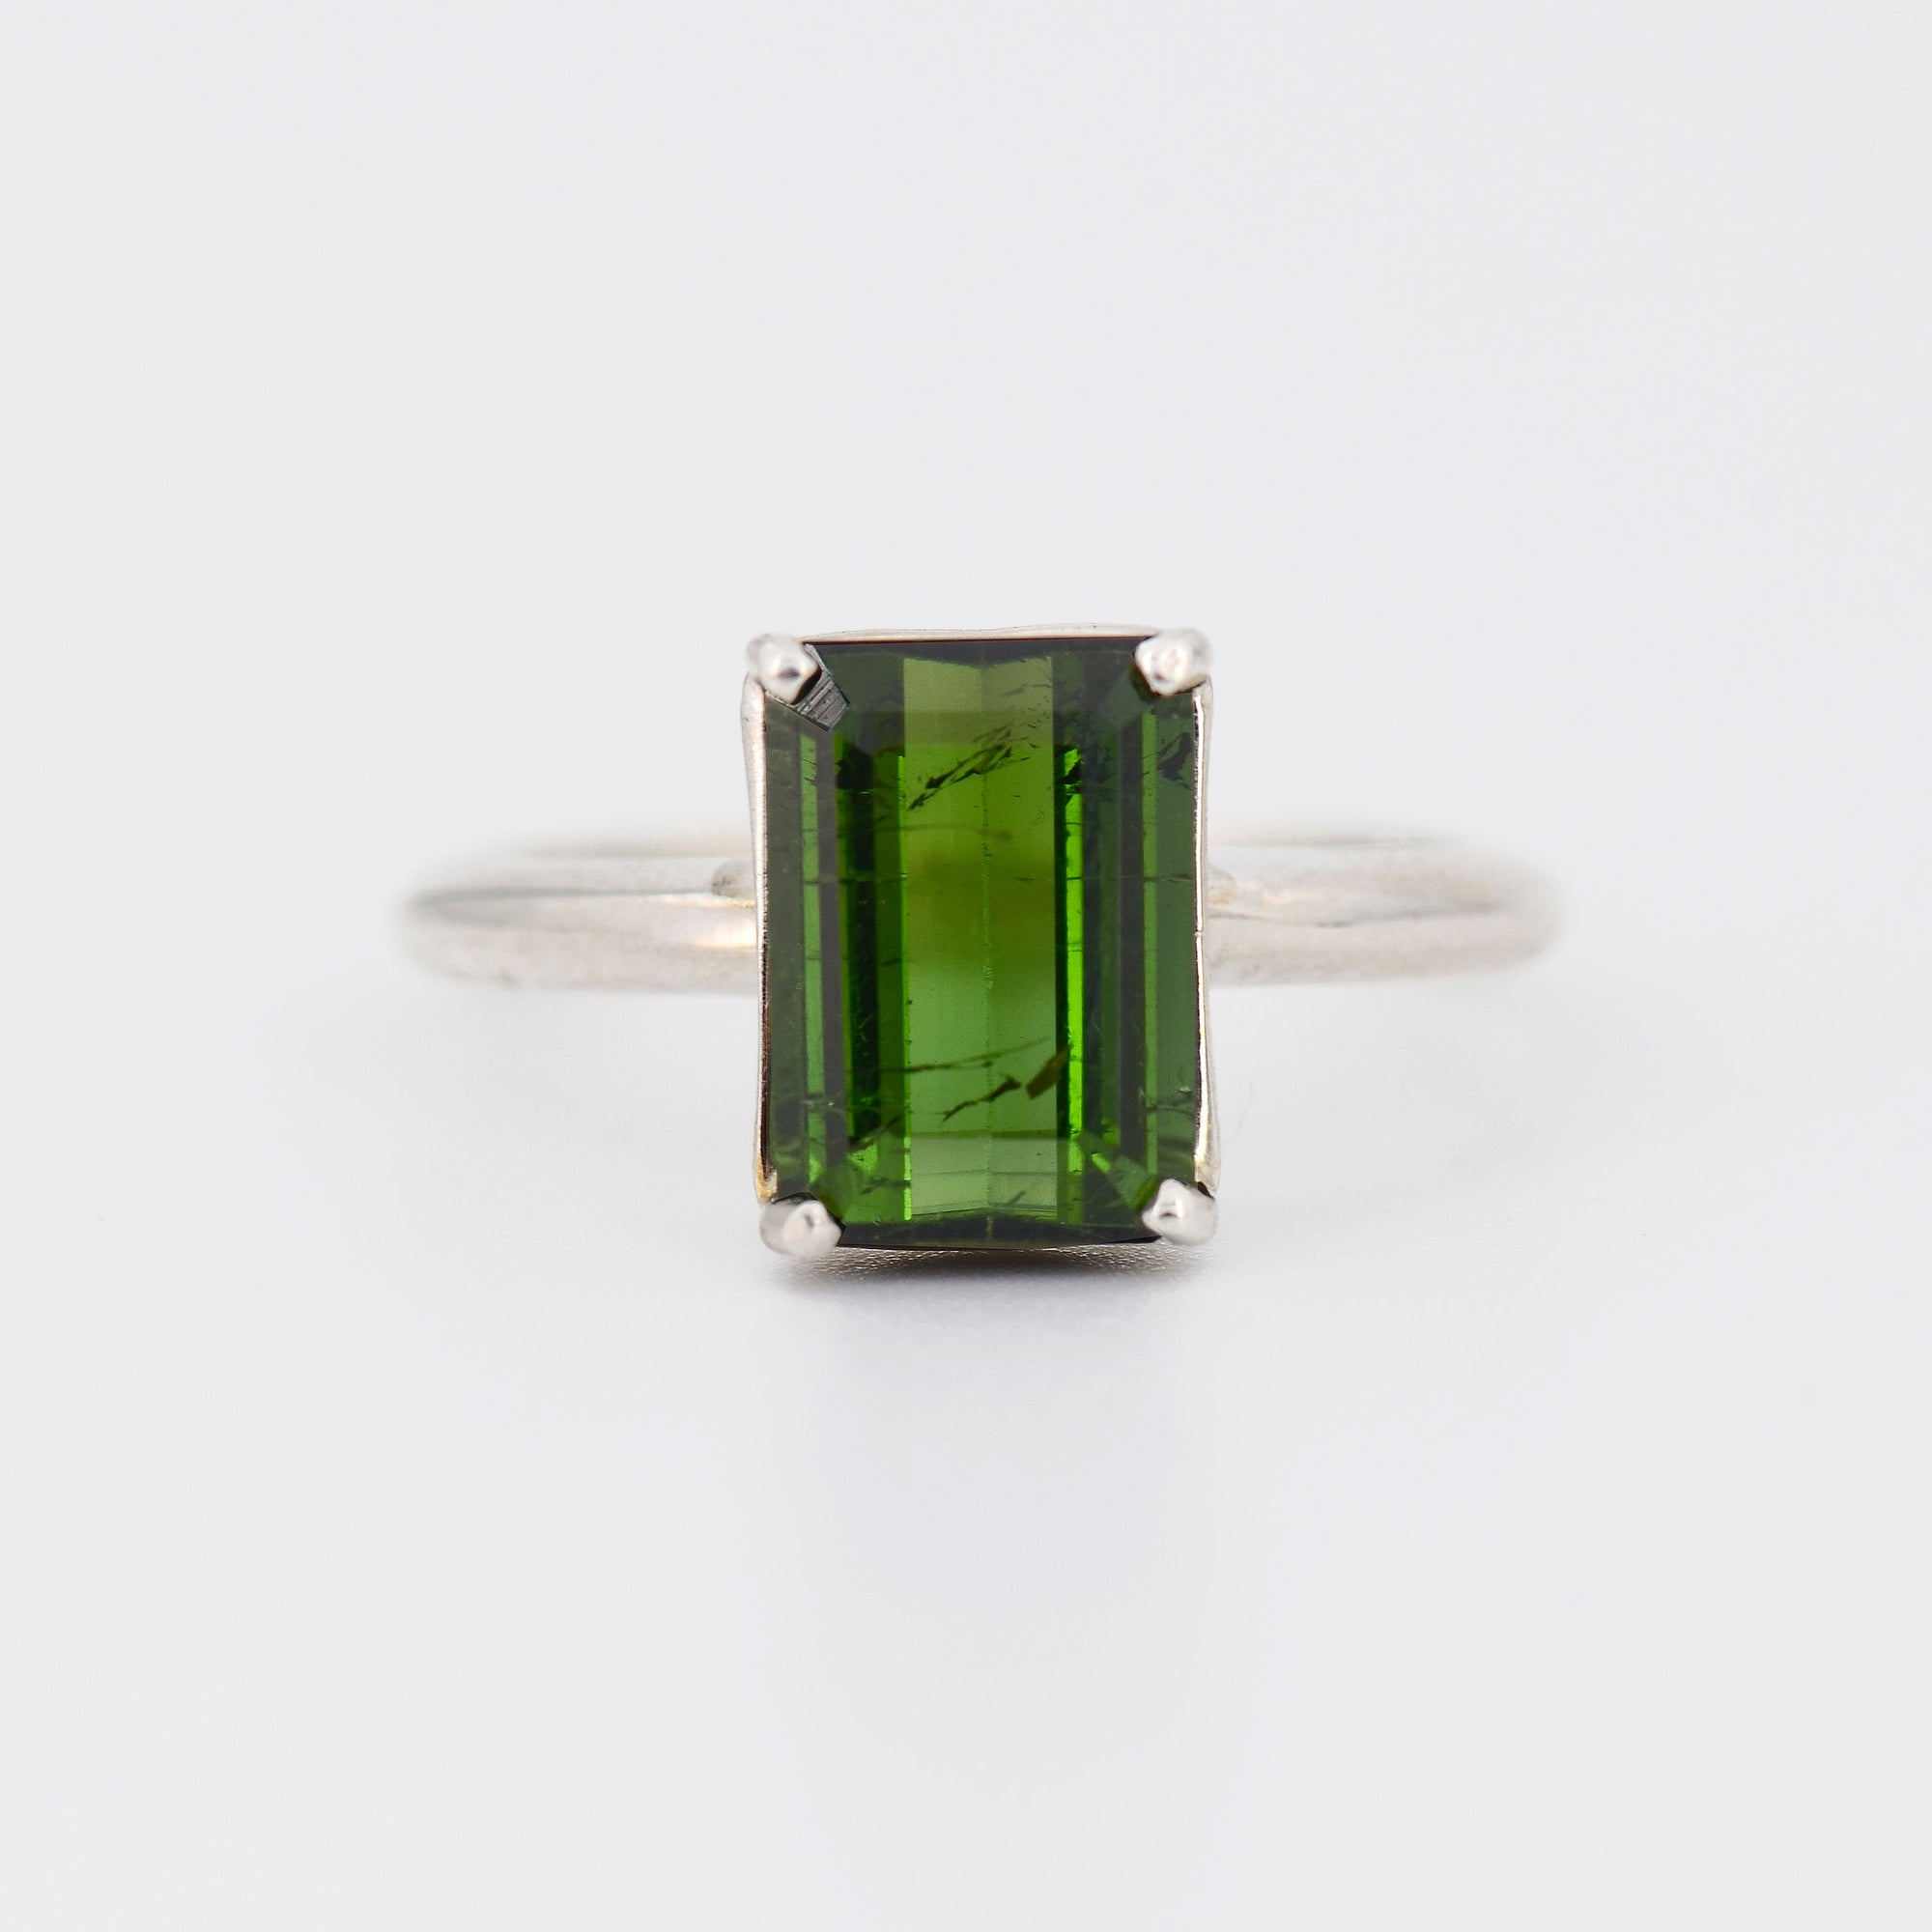 Multi Tourmaline ring, Natural green Tourmaline ring, October Birthstone ring, Emerald shape Gemstone ring, Sterling silver Everyday ring